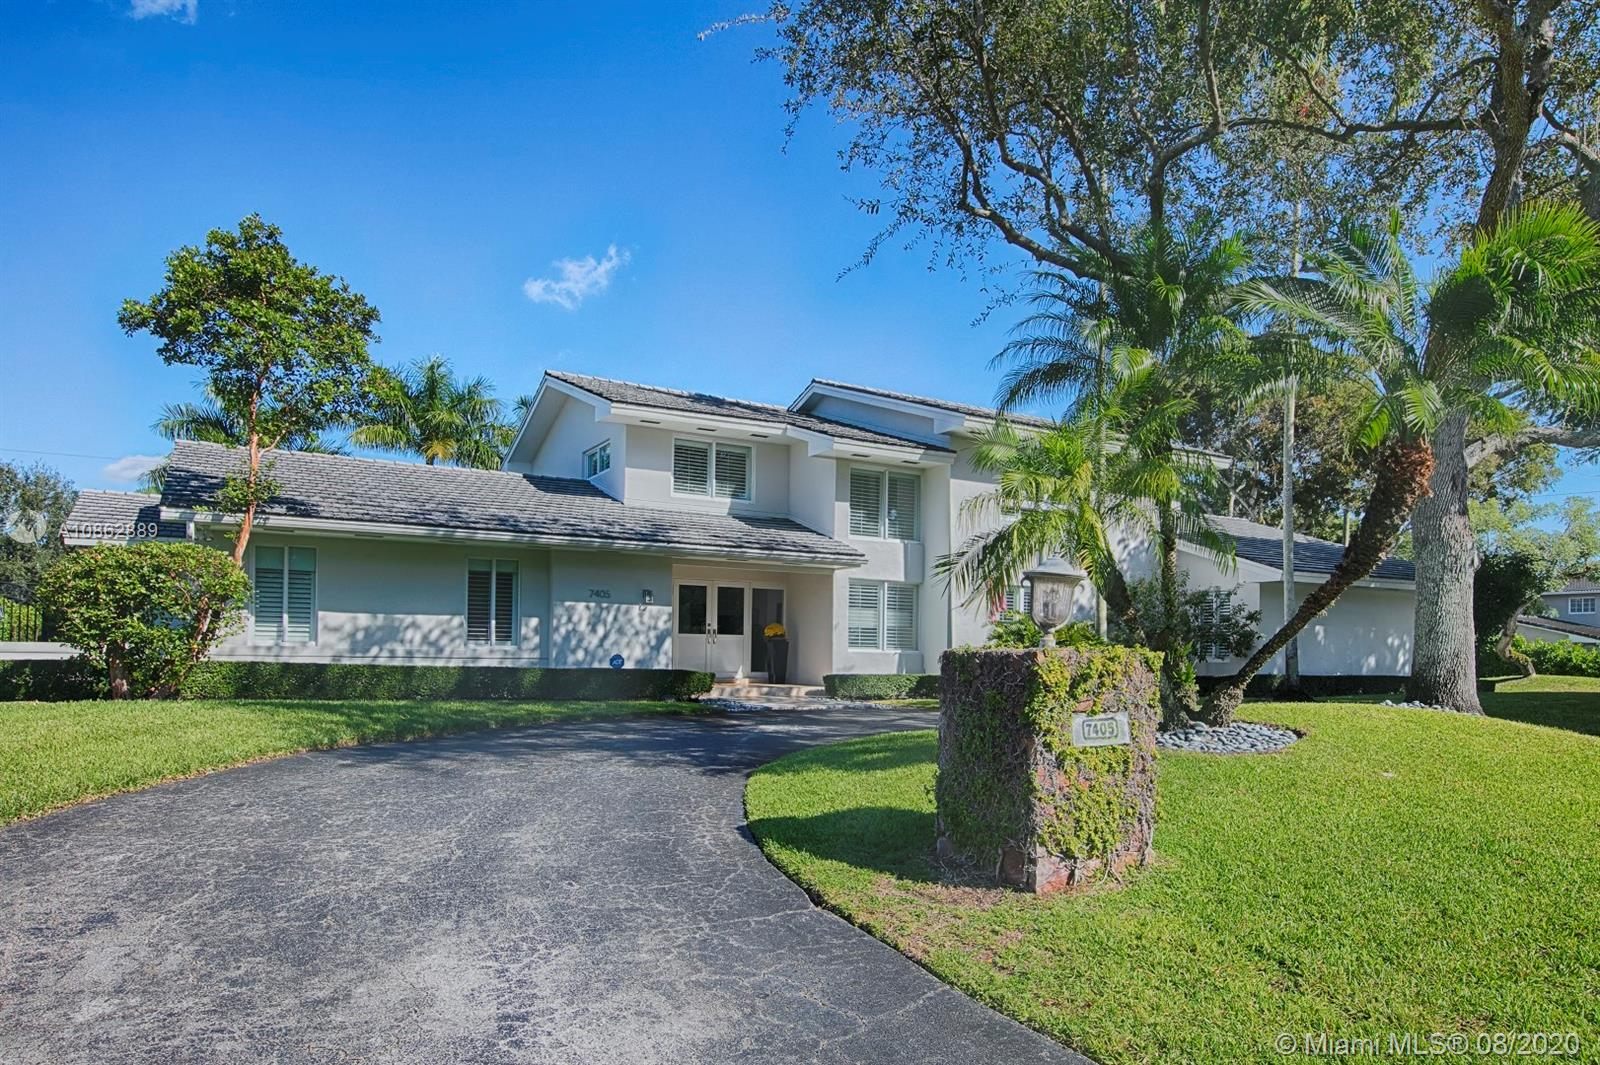 7405 SW 115th St, Pinecrest, Florida 33156, 5 Bedrooms Bedrooms, ,4 BathroomsBathrooms,Residential,For Sale,7405 SW 115th St,A10862889